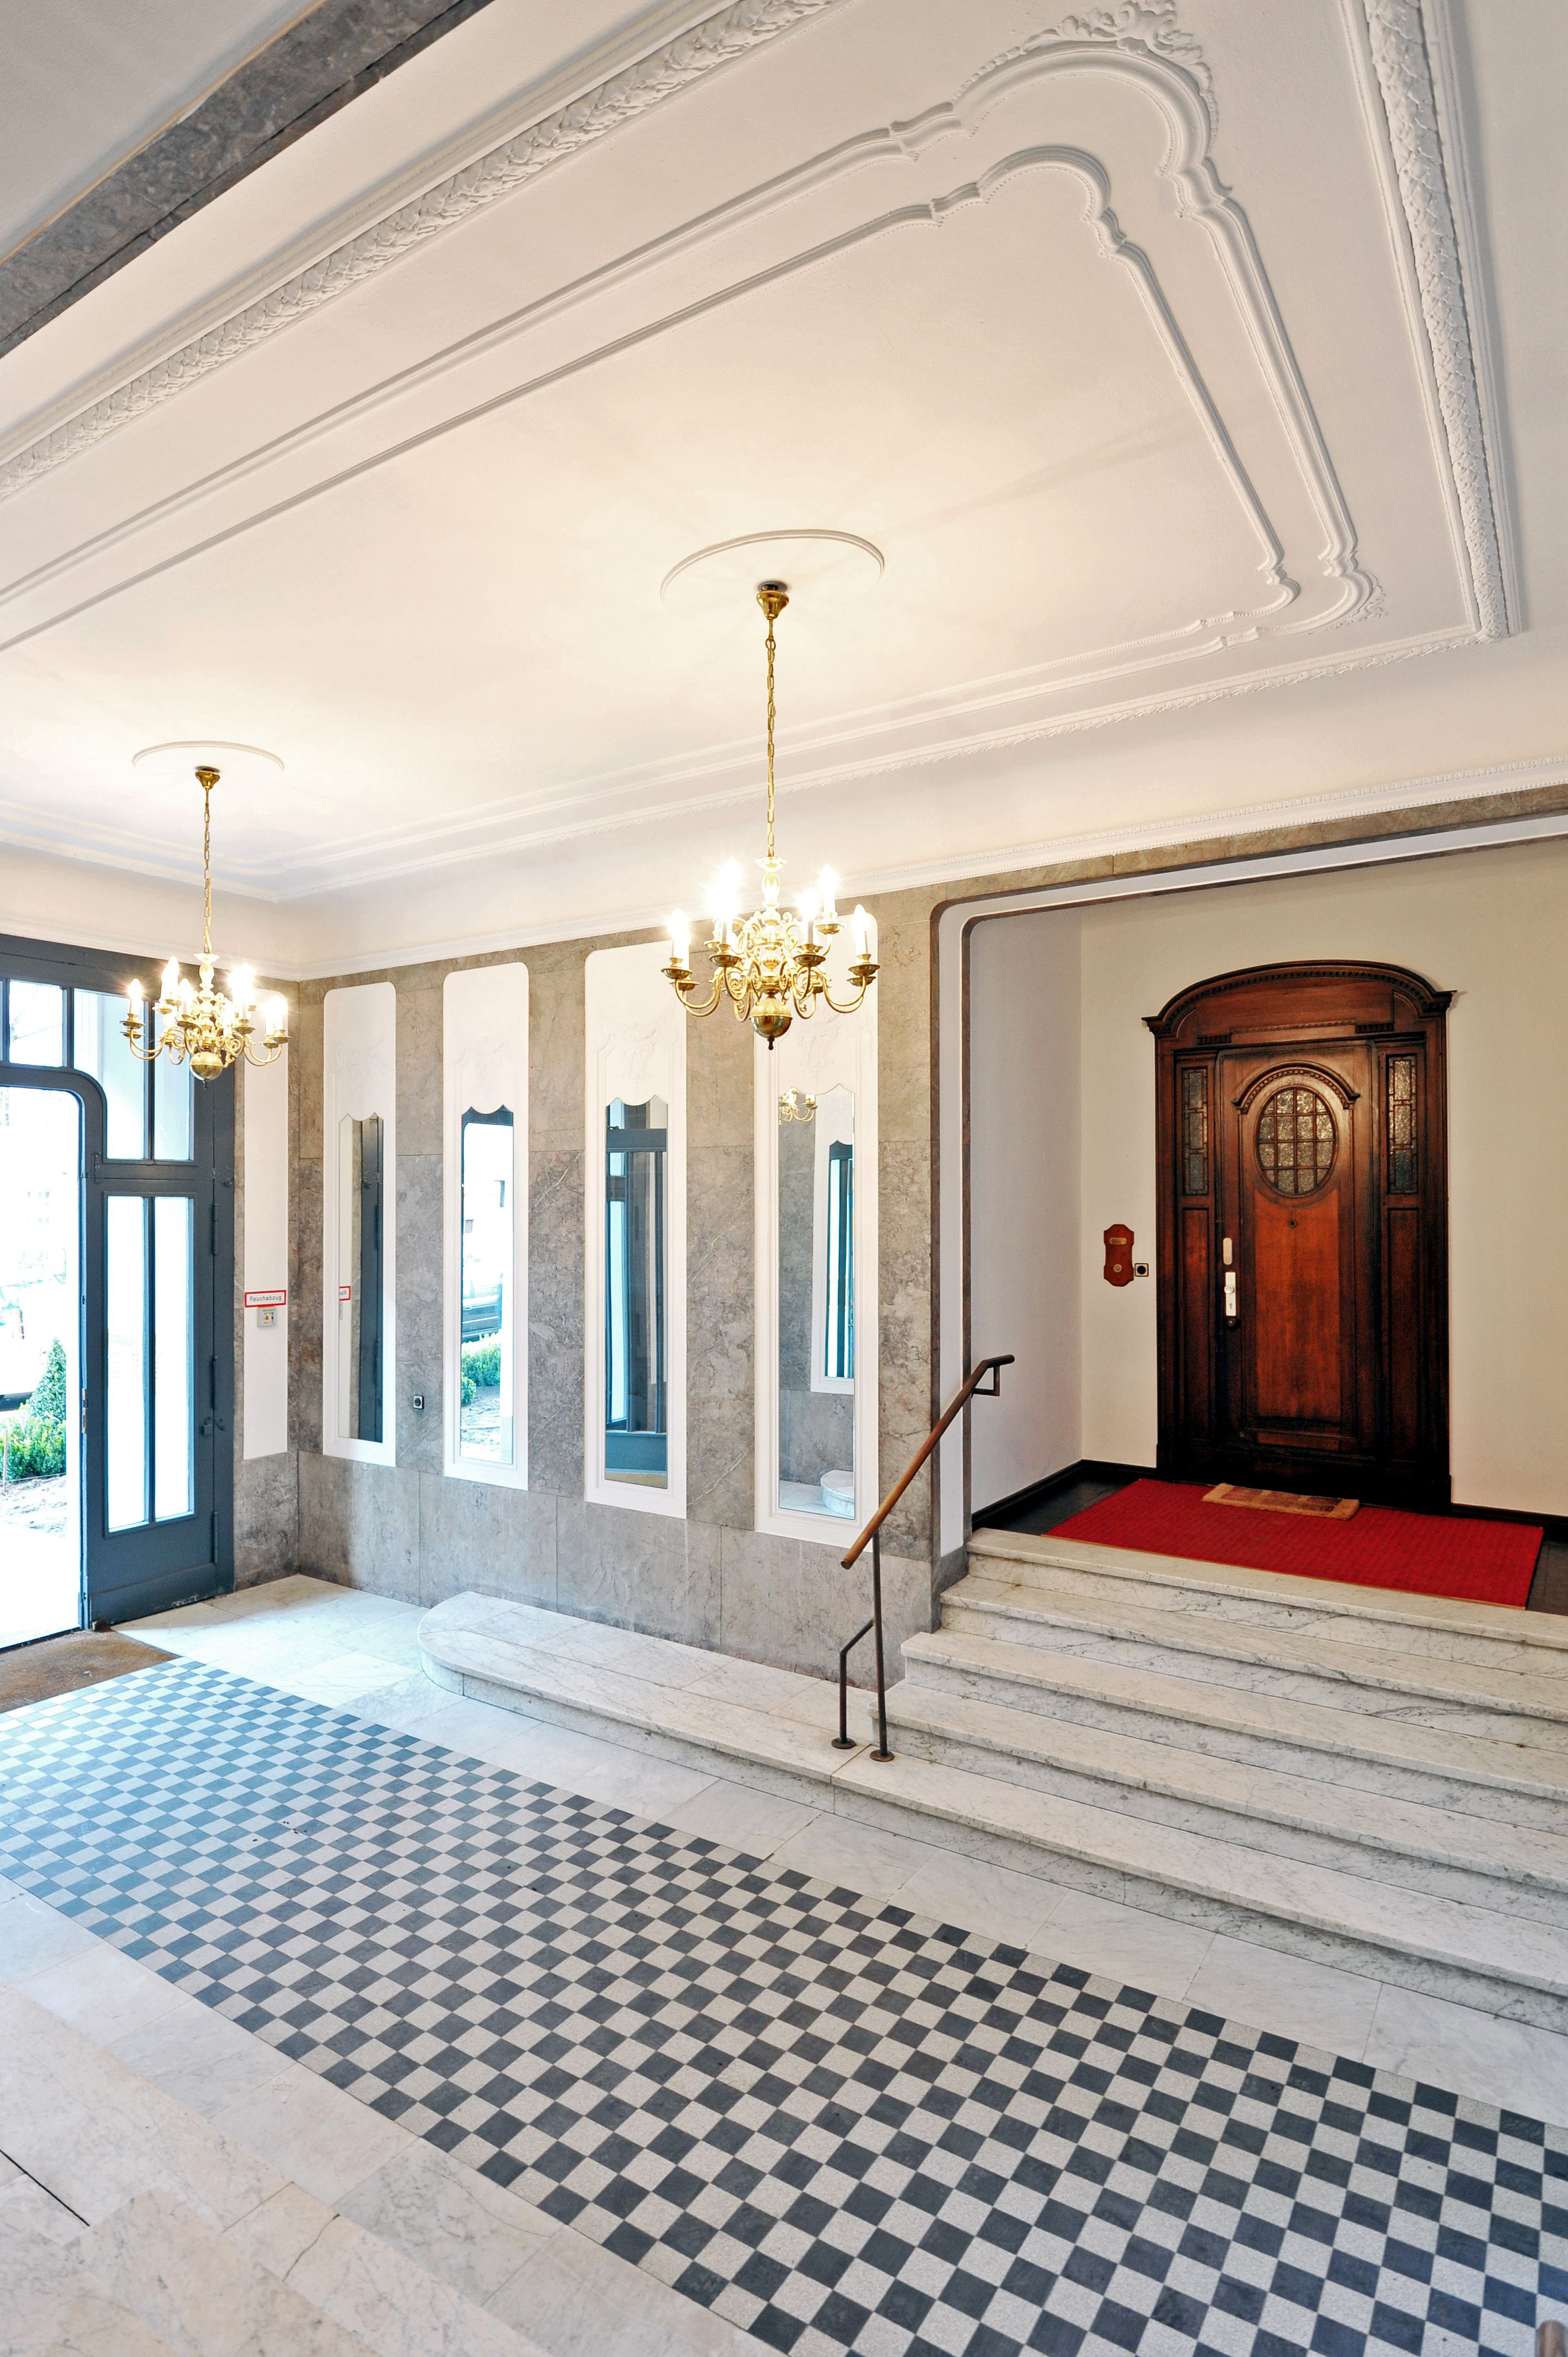 Nassauische Street has a very impressive and clean entrance.  #realestatelisting #realestate #realestatenews #realestatemarketing #realestateagent #investmentproperty #investment #financing #properties #propertysales #berlin #living  #home #newhome #househunting #entrance #beautiful